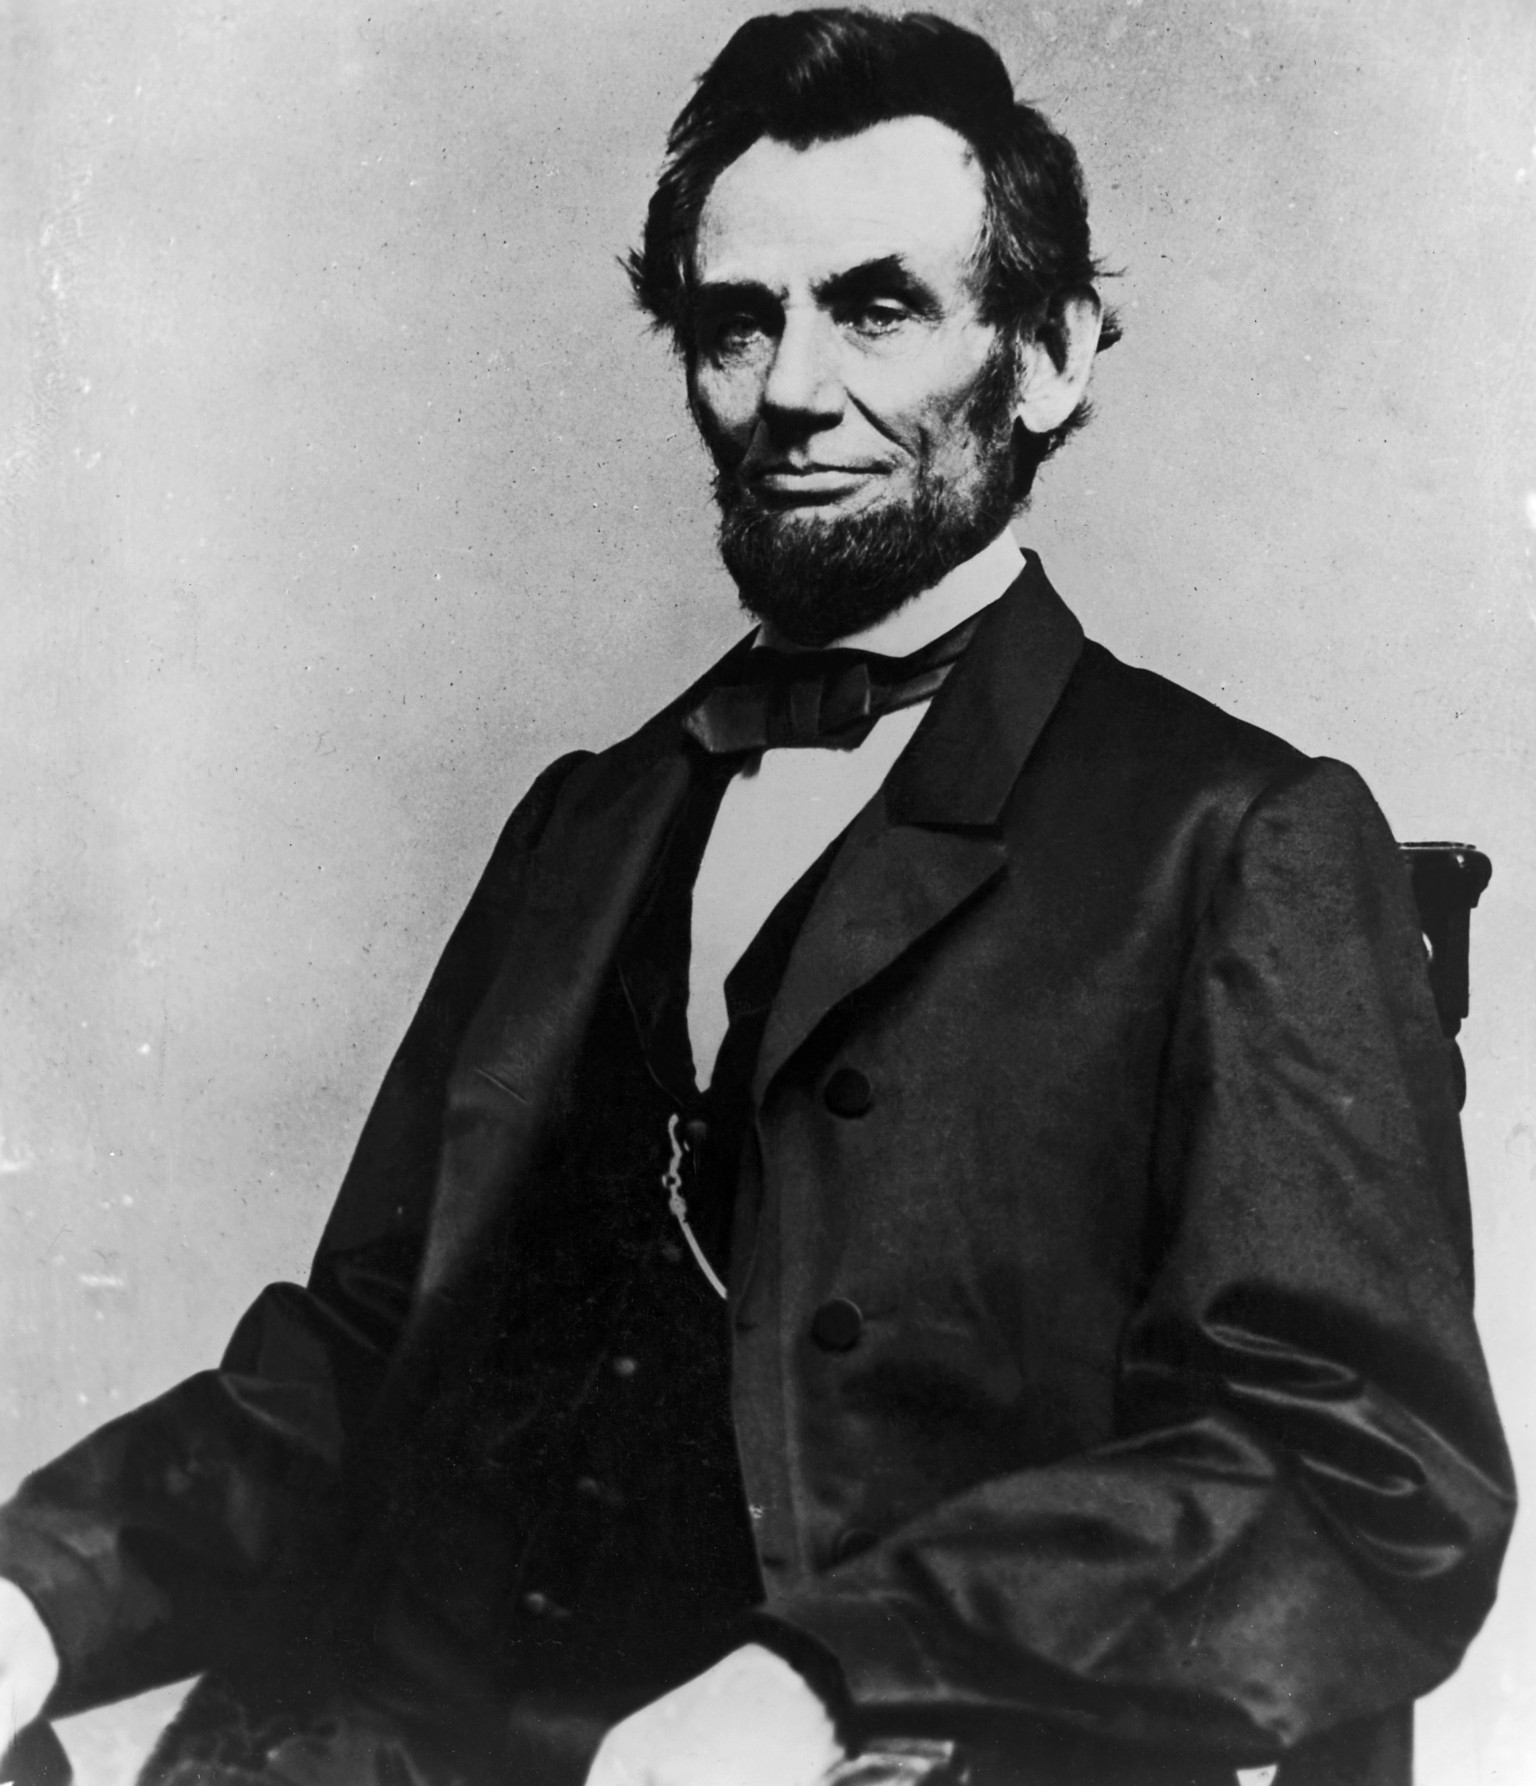 the significance of president abraham lincol In november 1863, president abraham lincoln was invited to deliver remarks, which later became known as the gettysburg address, at the official dedication ceremony for the national cemetery of.